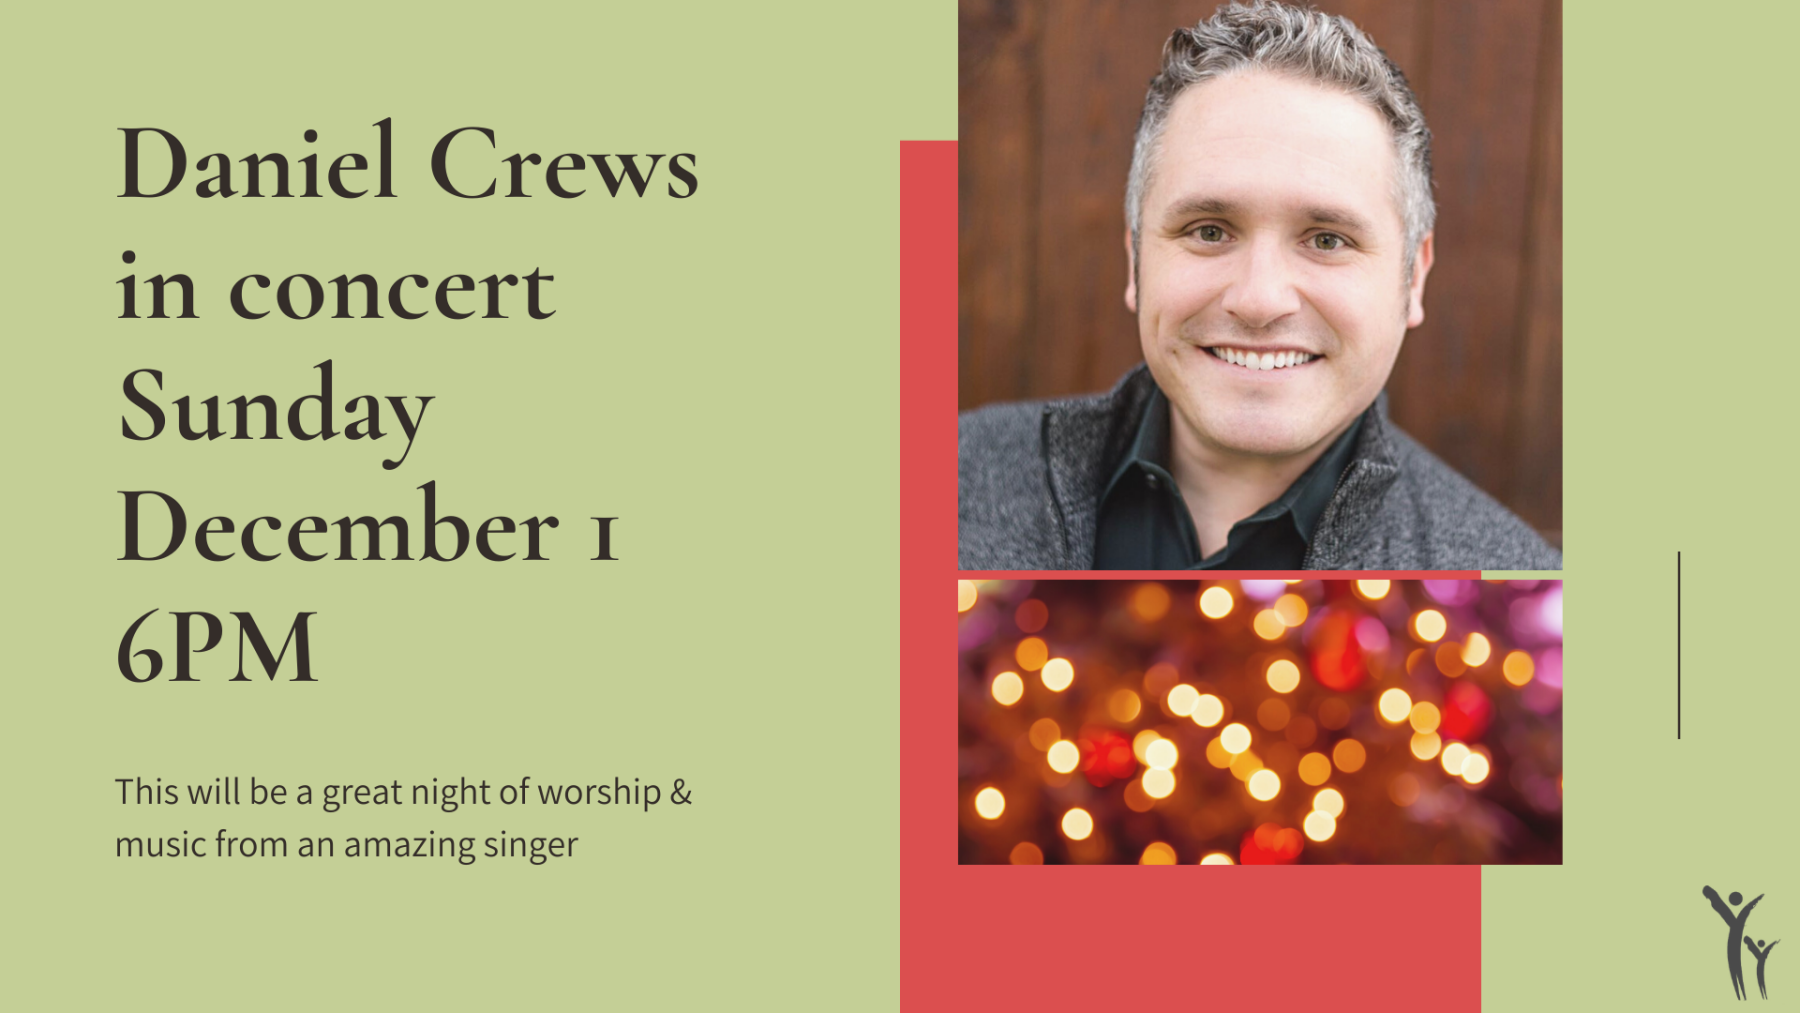 Daniel Crews in concert December 1 @ 6pm